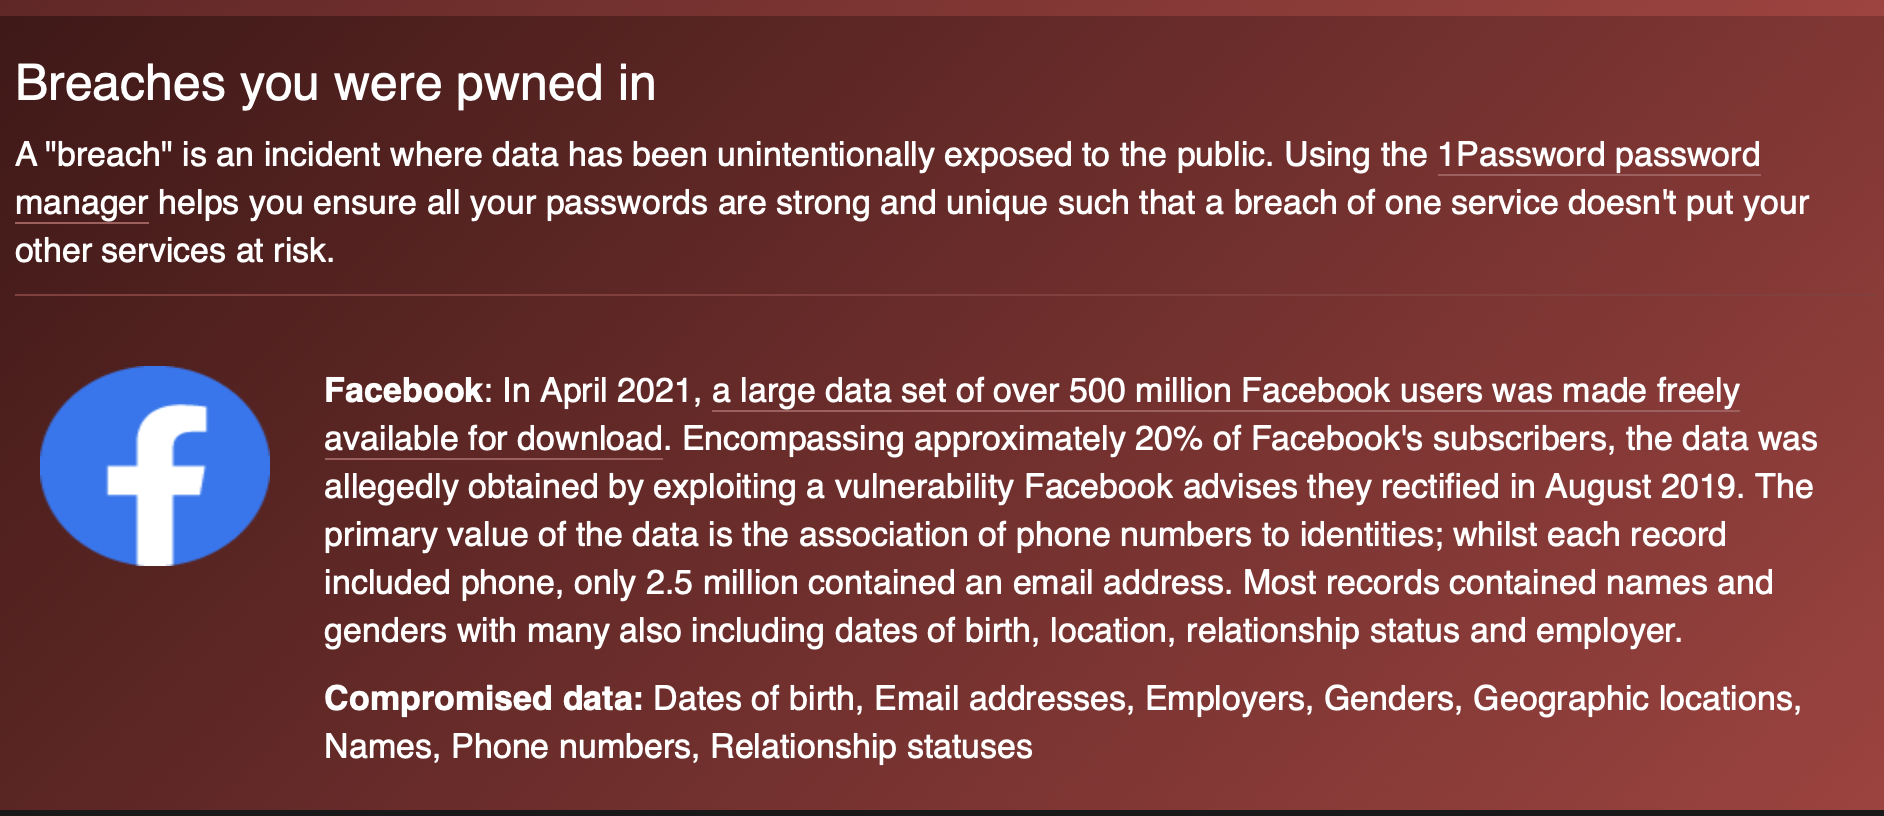 Facebook Data Breach on Have I Been Pwned